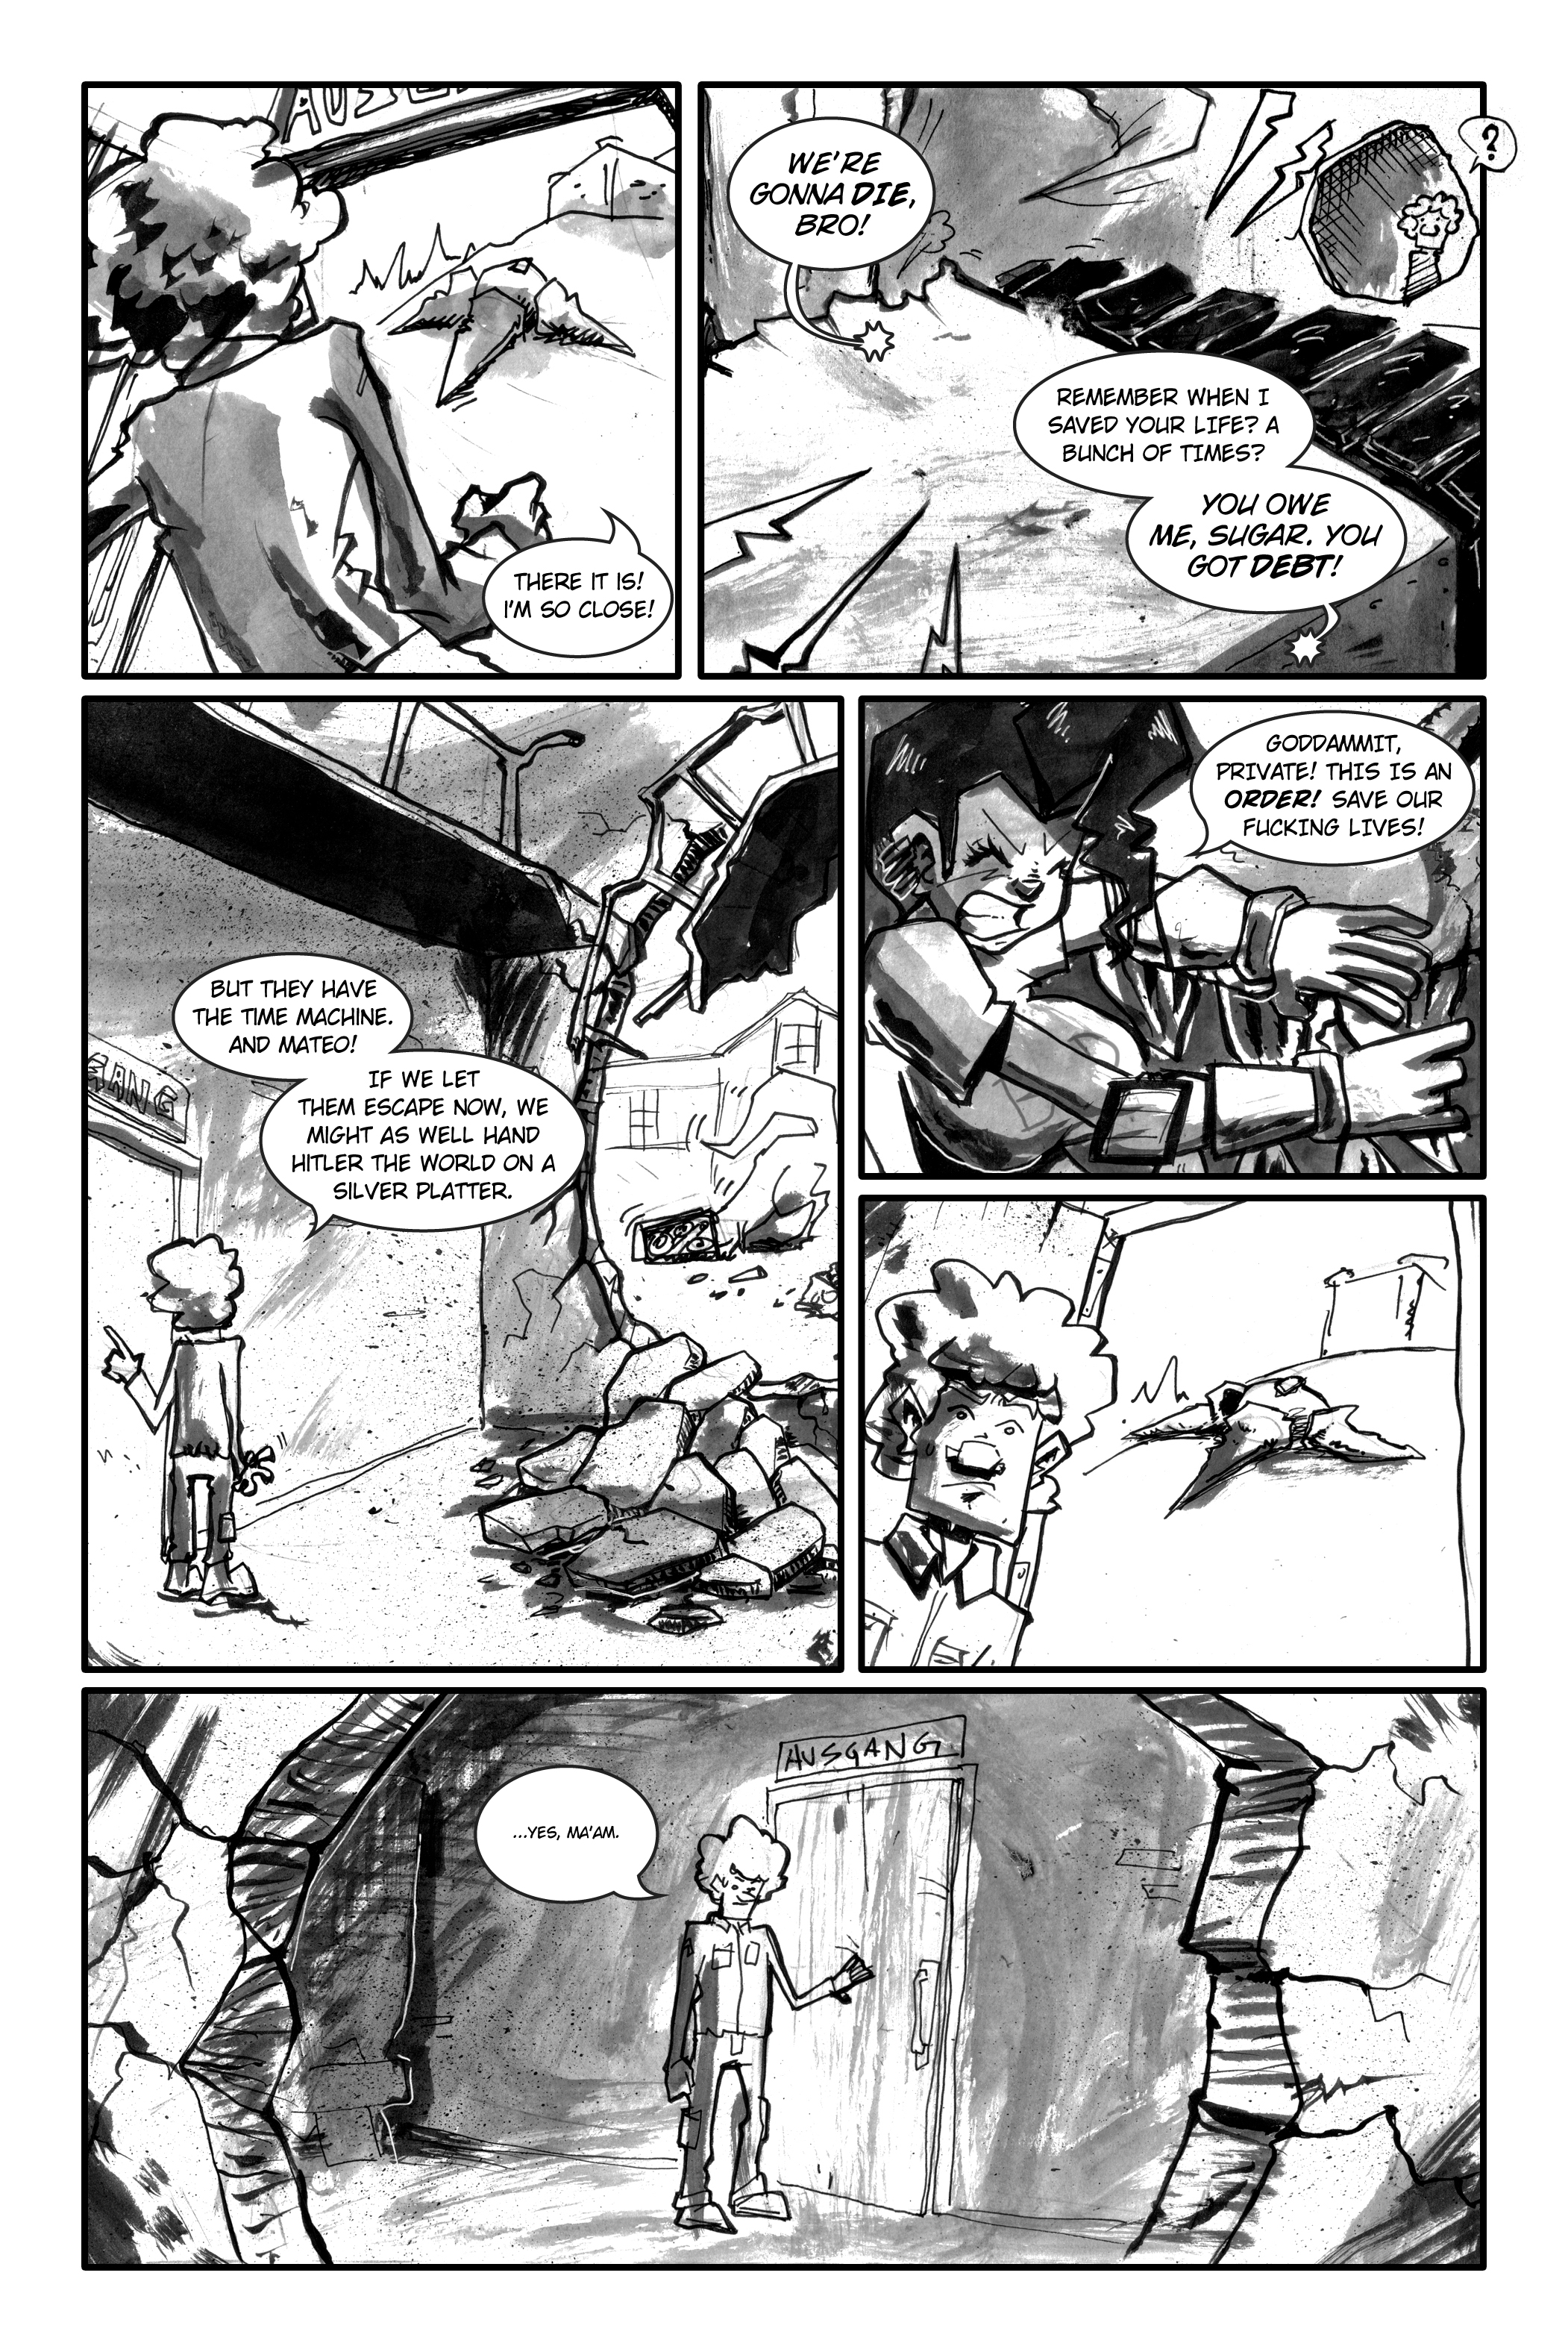 Issue 3, Page 16